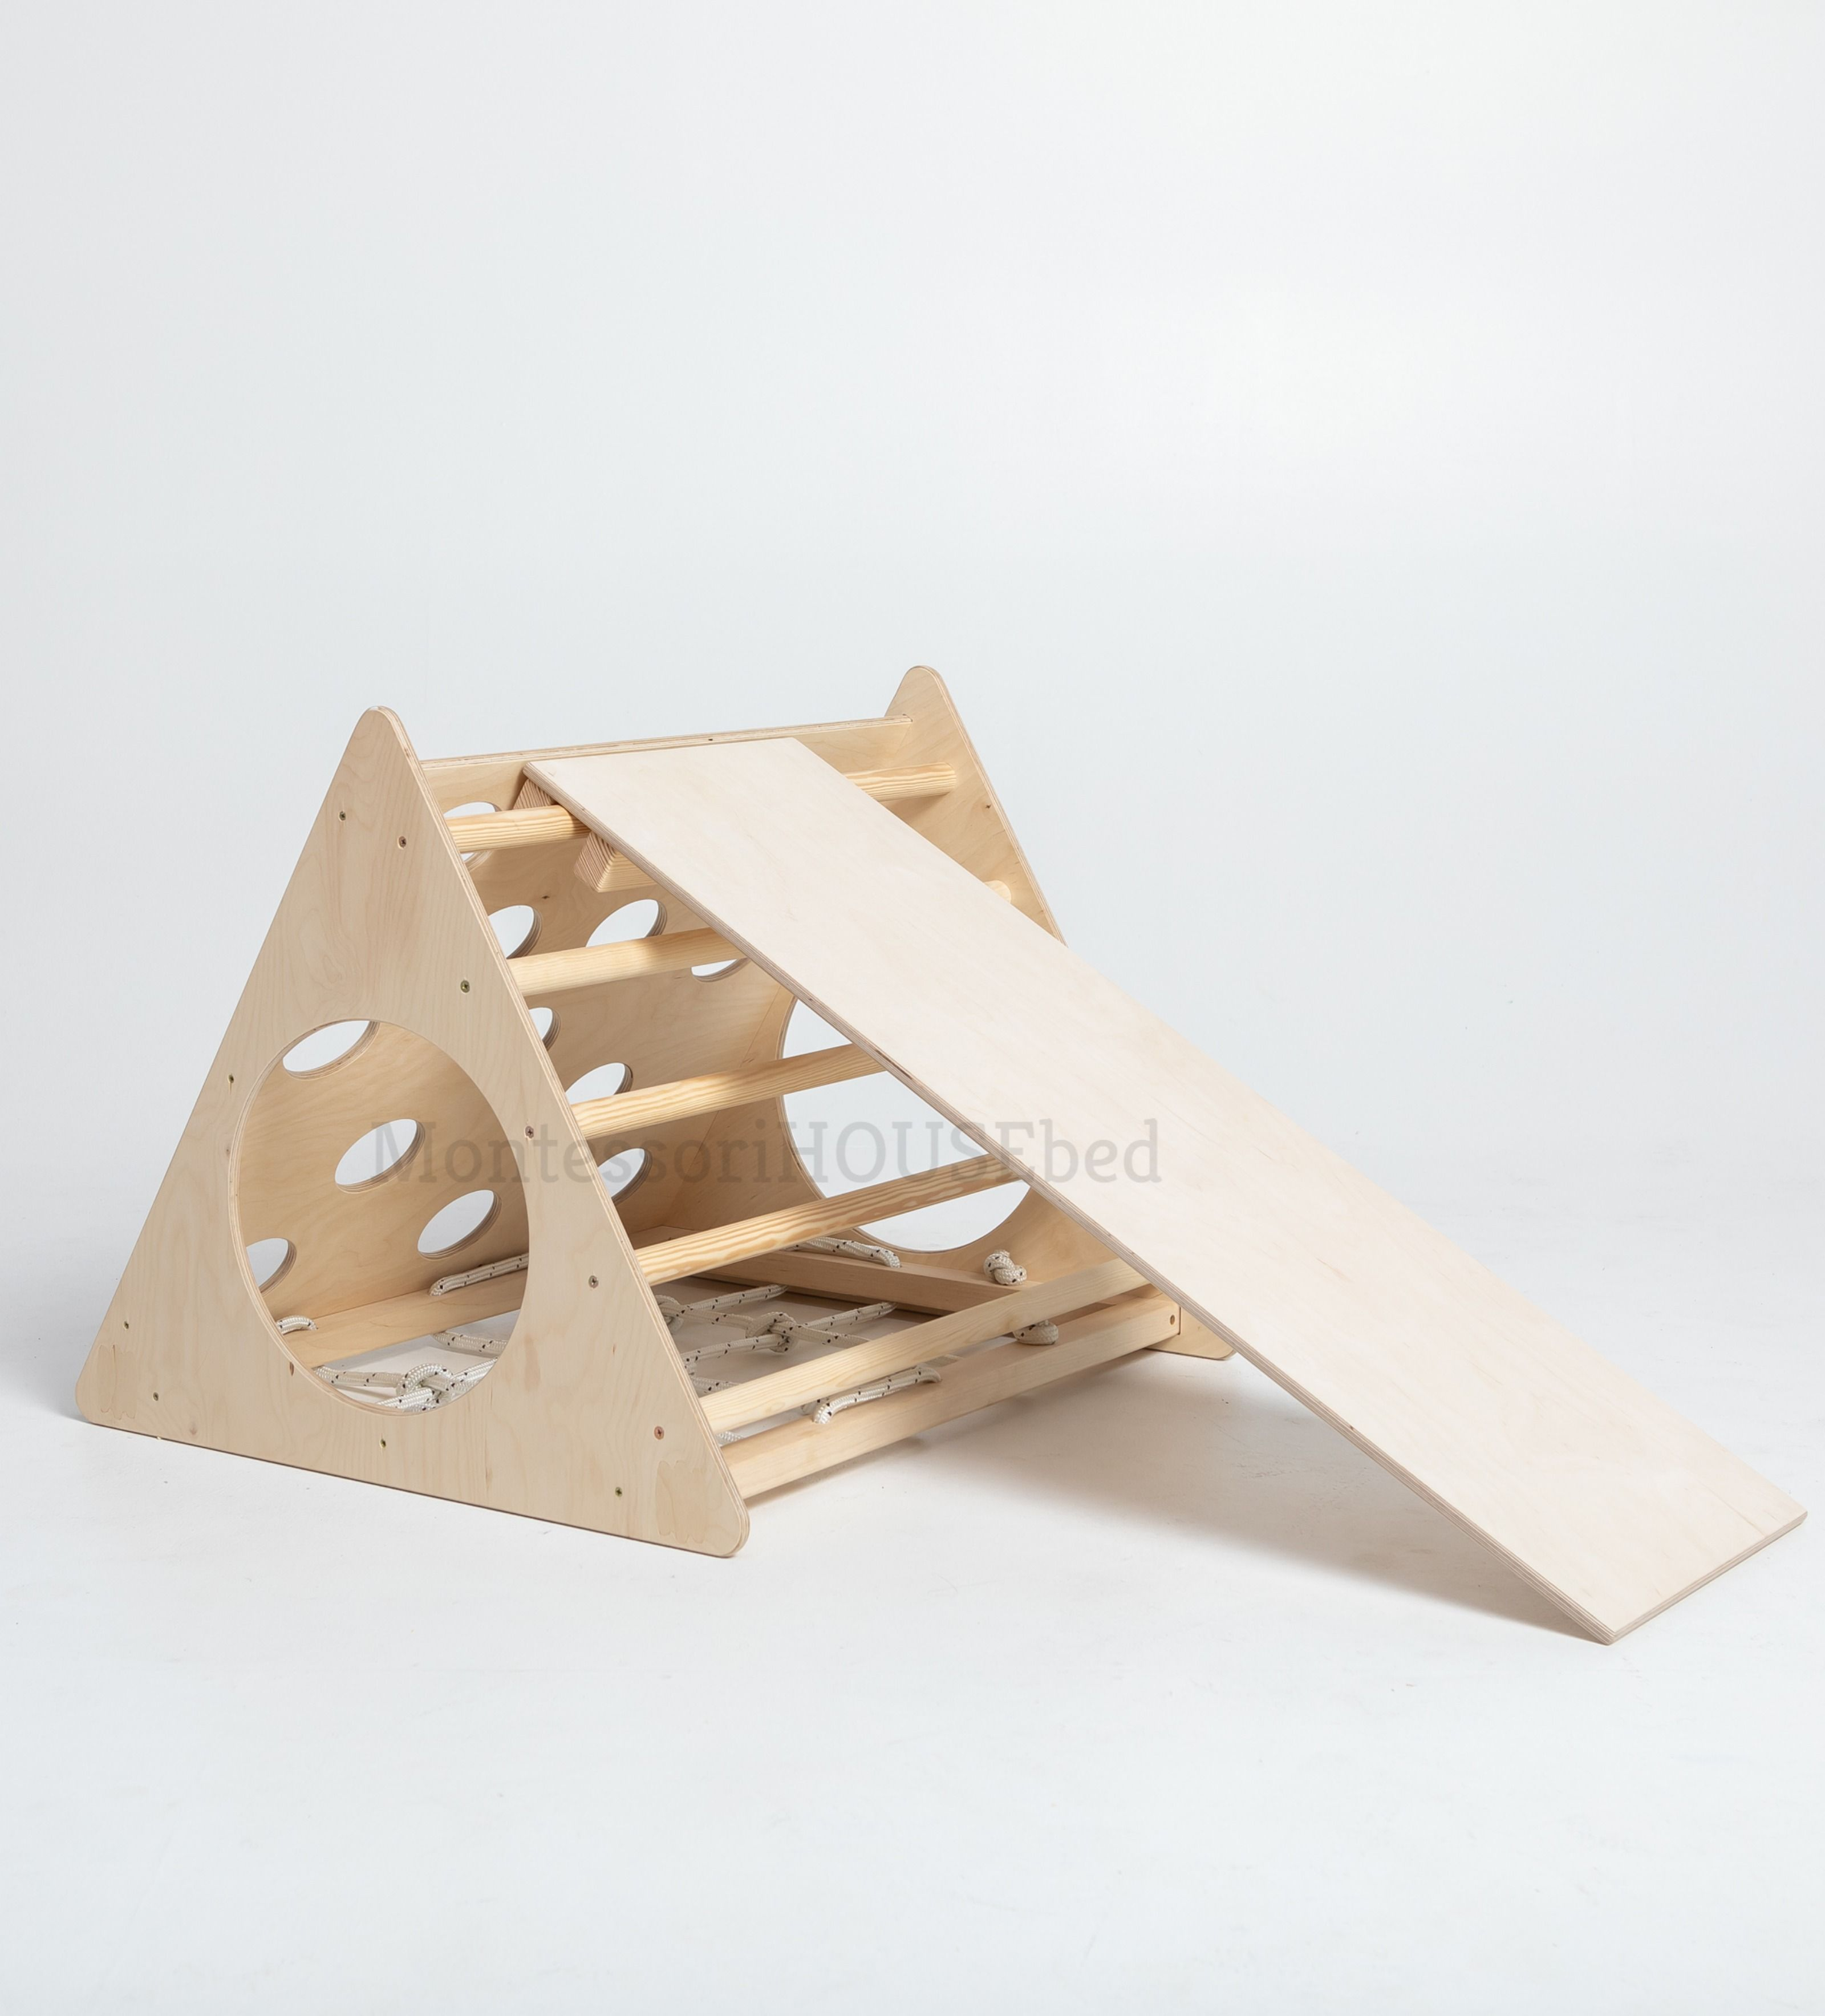 Photo of Transformable Pikler triangle, Step Triangle, Climbing ladder for toddler Climbing triangle for toddlers Triangle with ramp Pikler dreieck